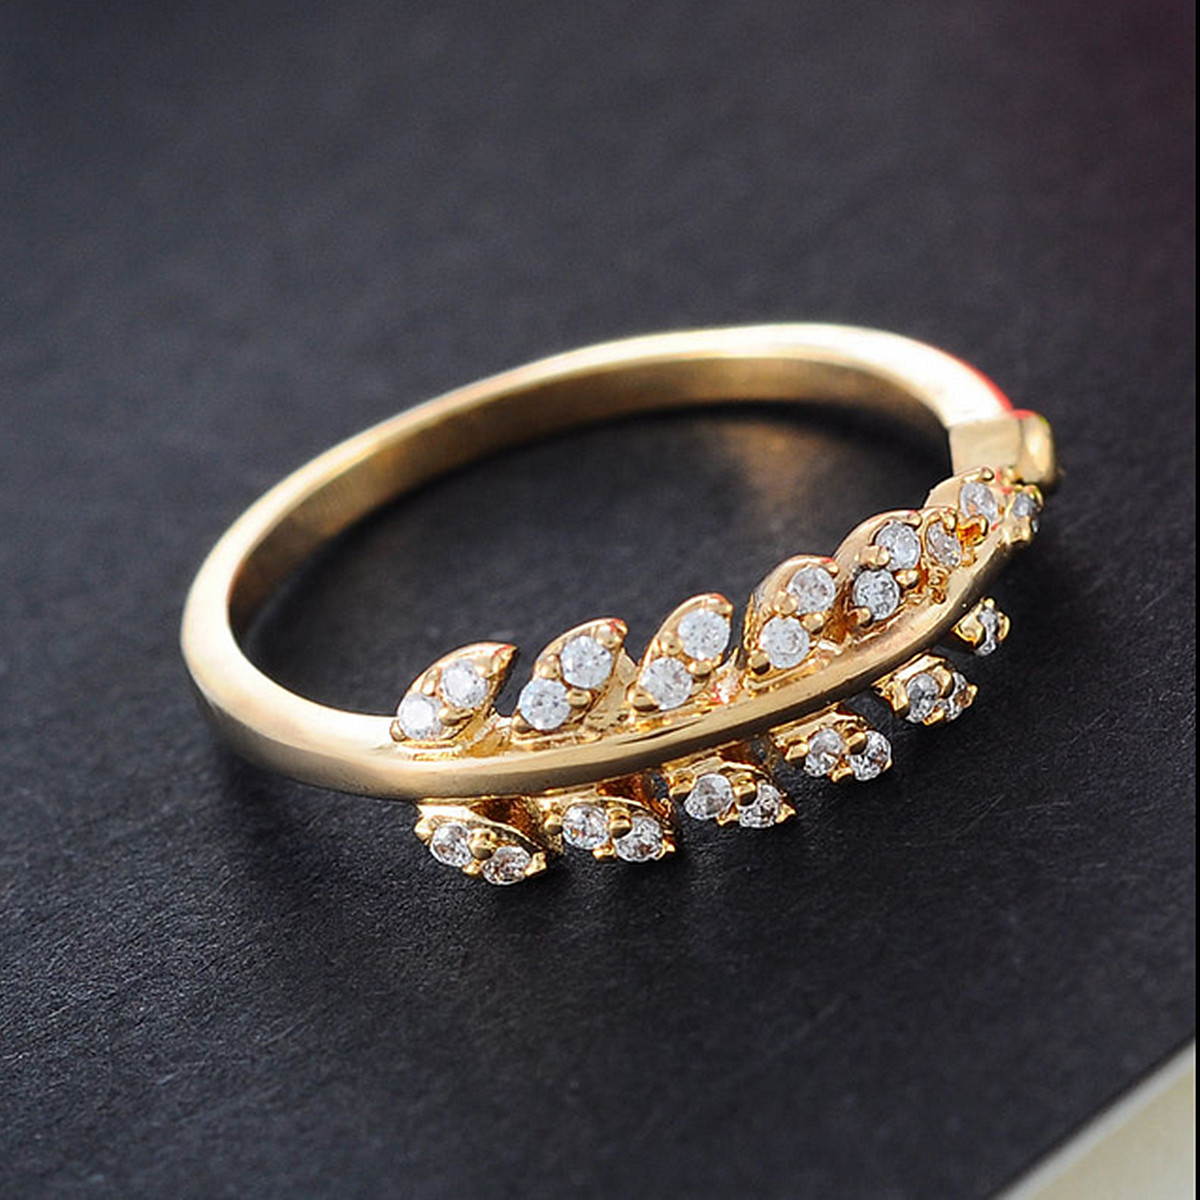 women shop stone white for jewelry rings anel the wedding engagement fashion silver item diamond multicolor lady off band ring simulated gifts sets